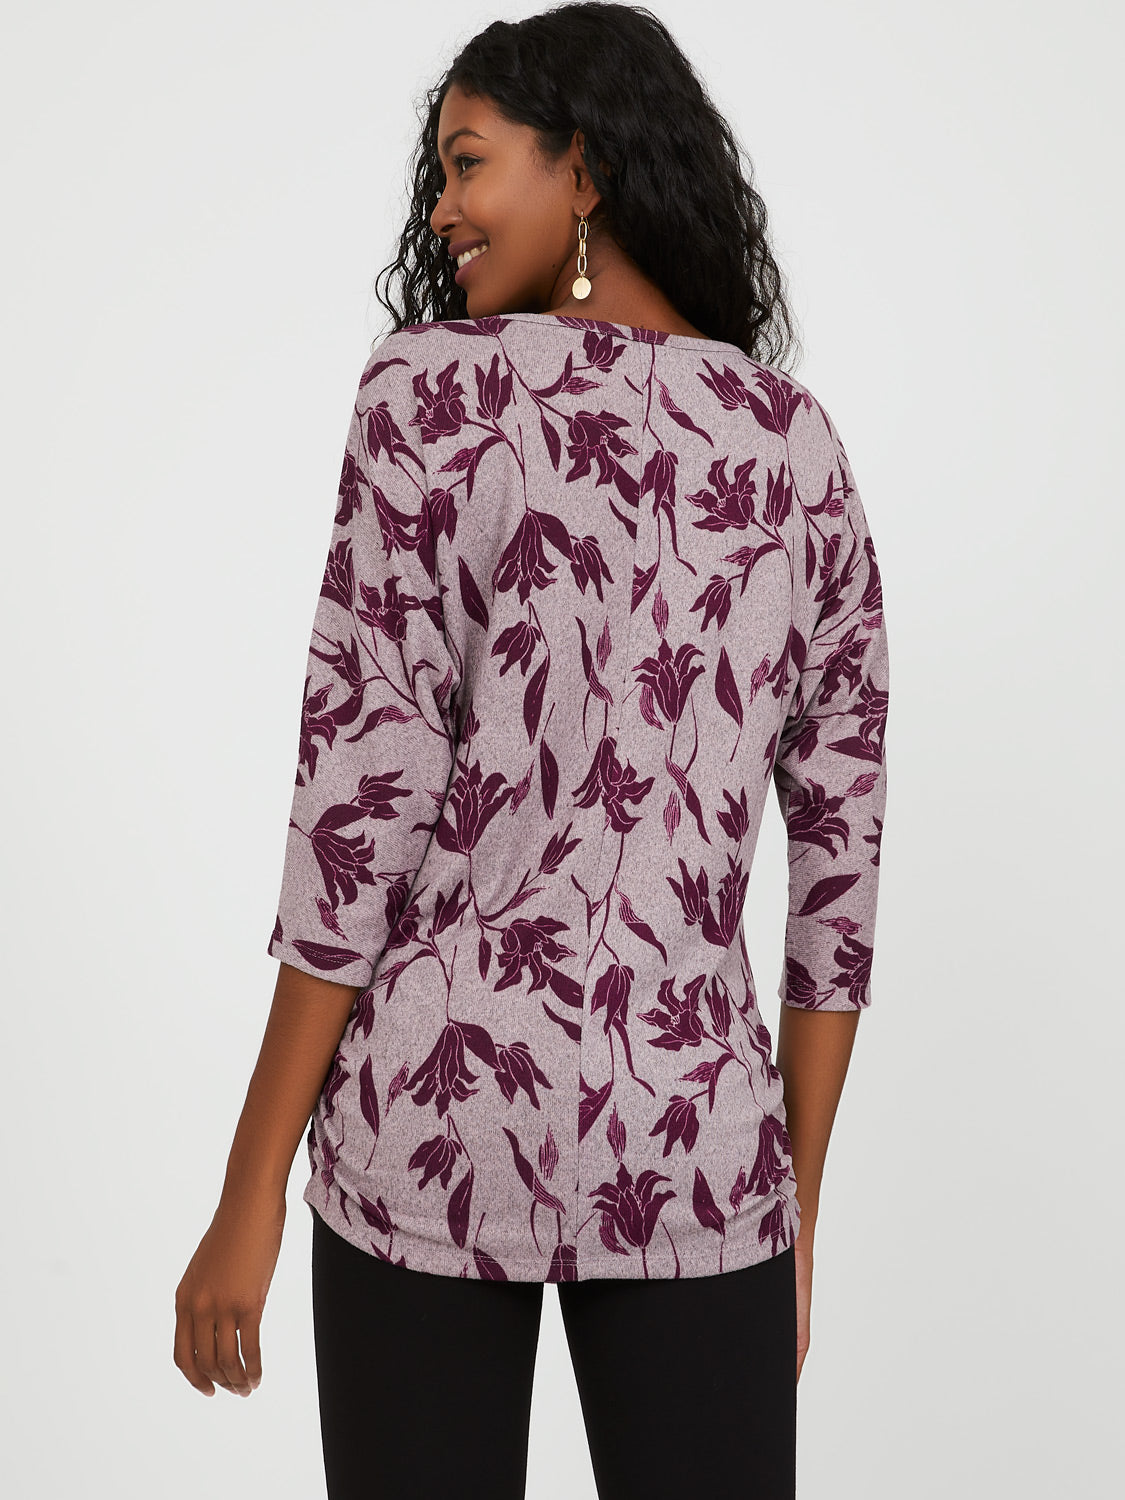 Ruched Side Floral Top